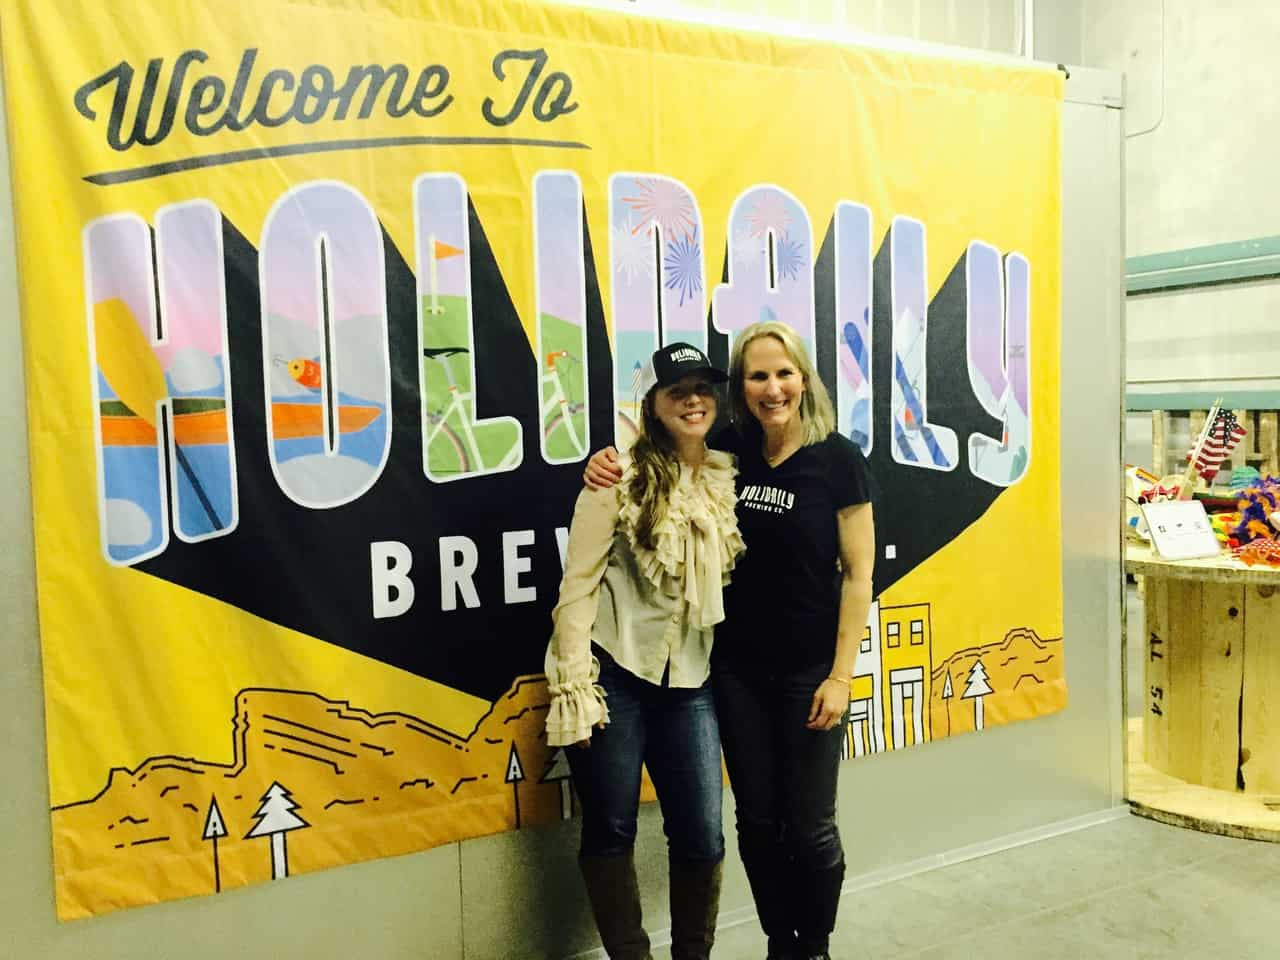 Holidaily Brewing Company: Wonderful Gluten-Free Beer